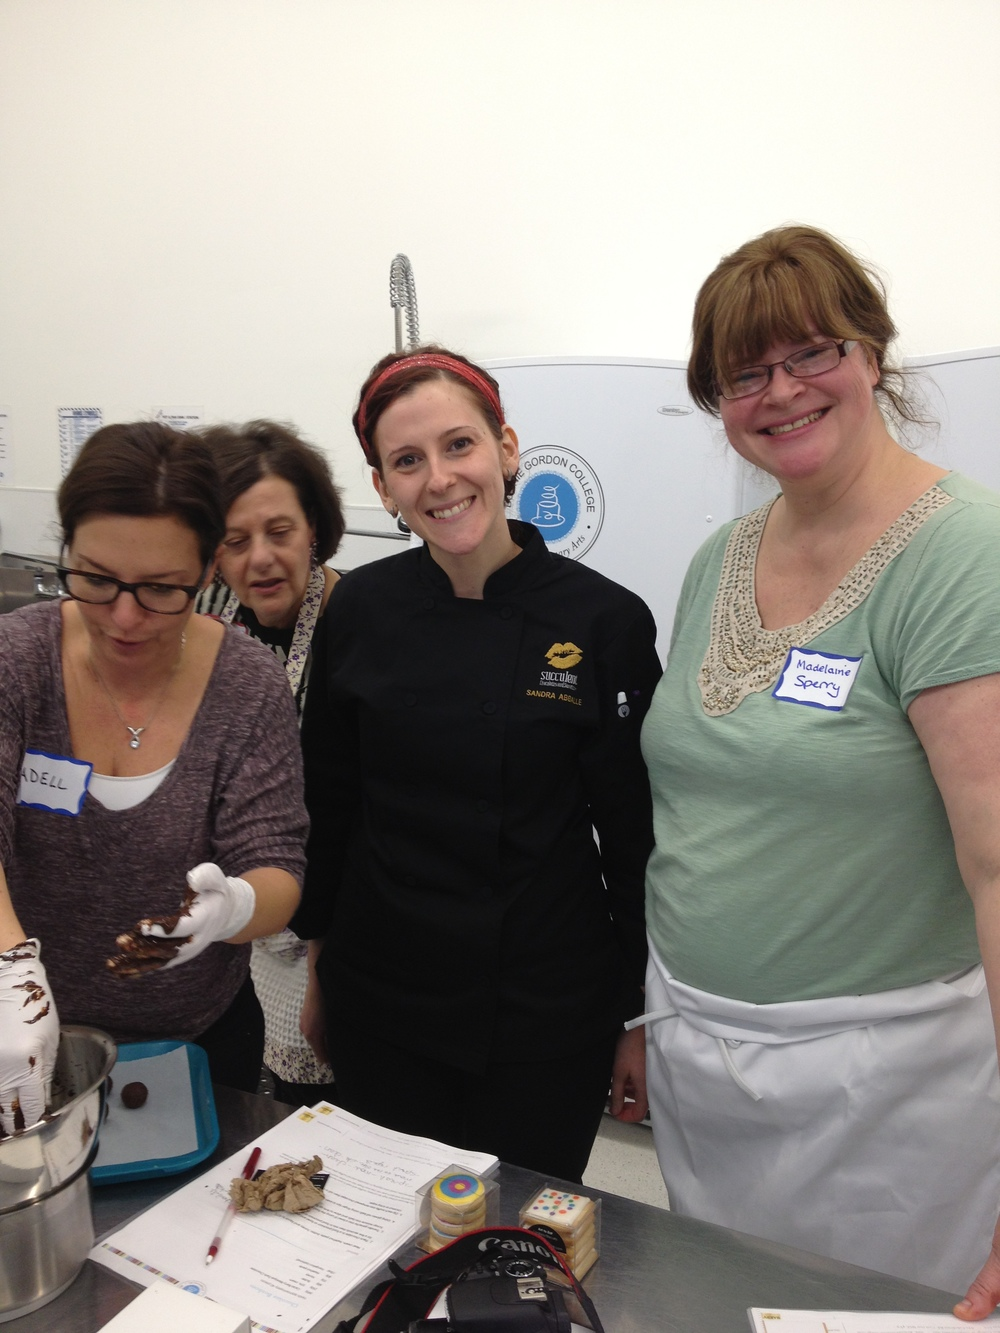 Sandra working with some ladies of the Women's Culinary Network